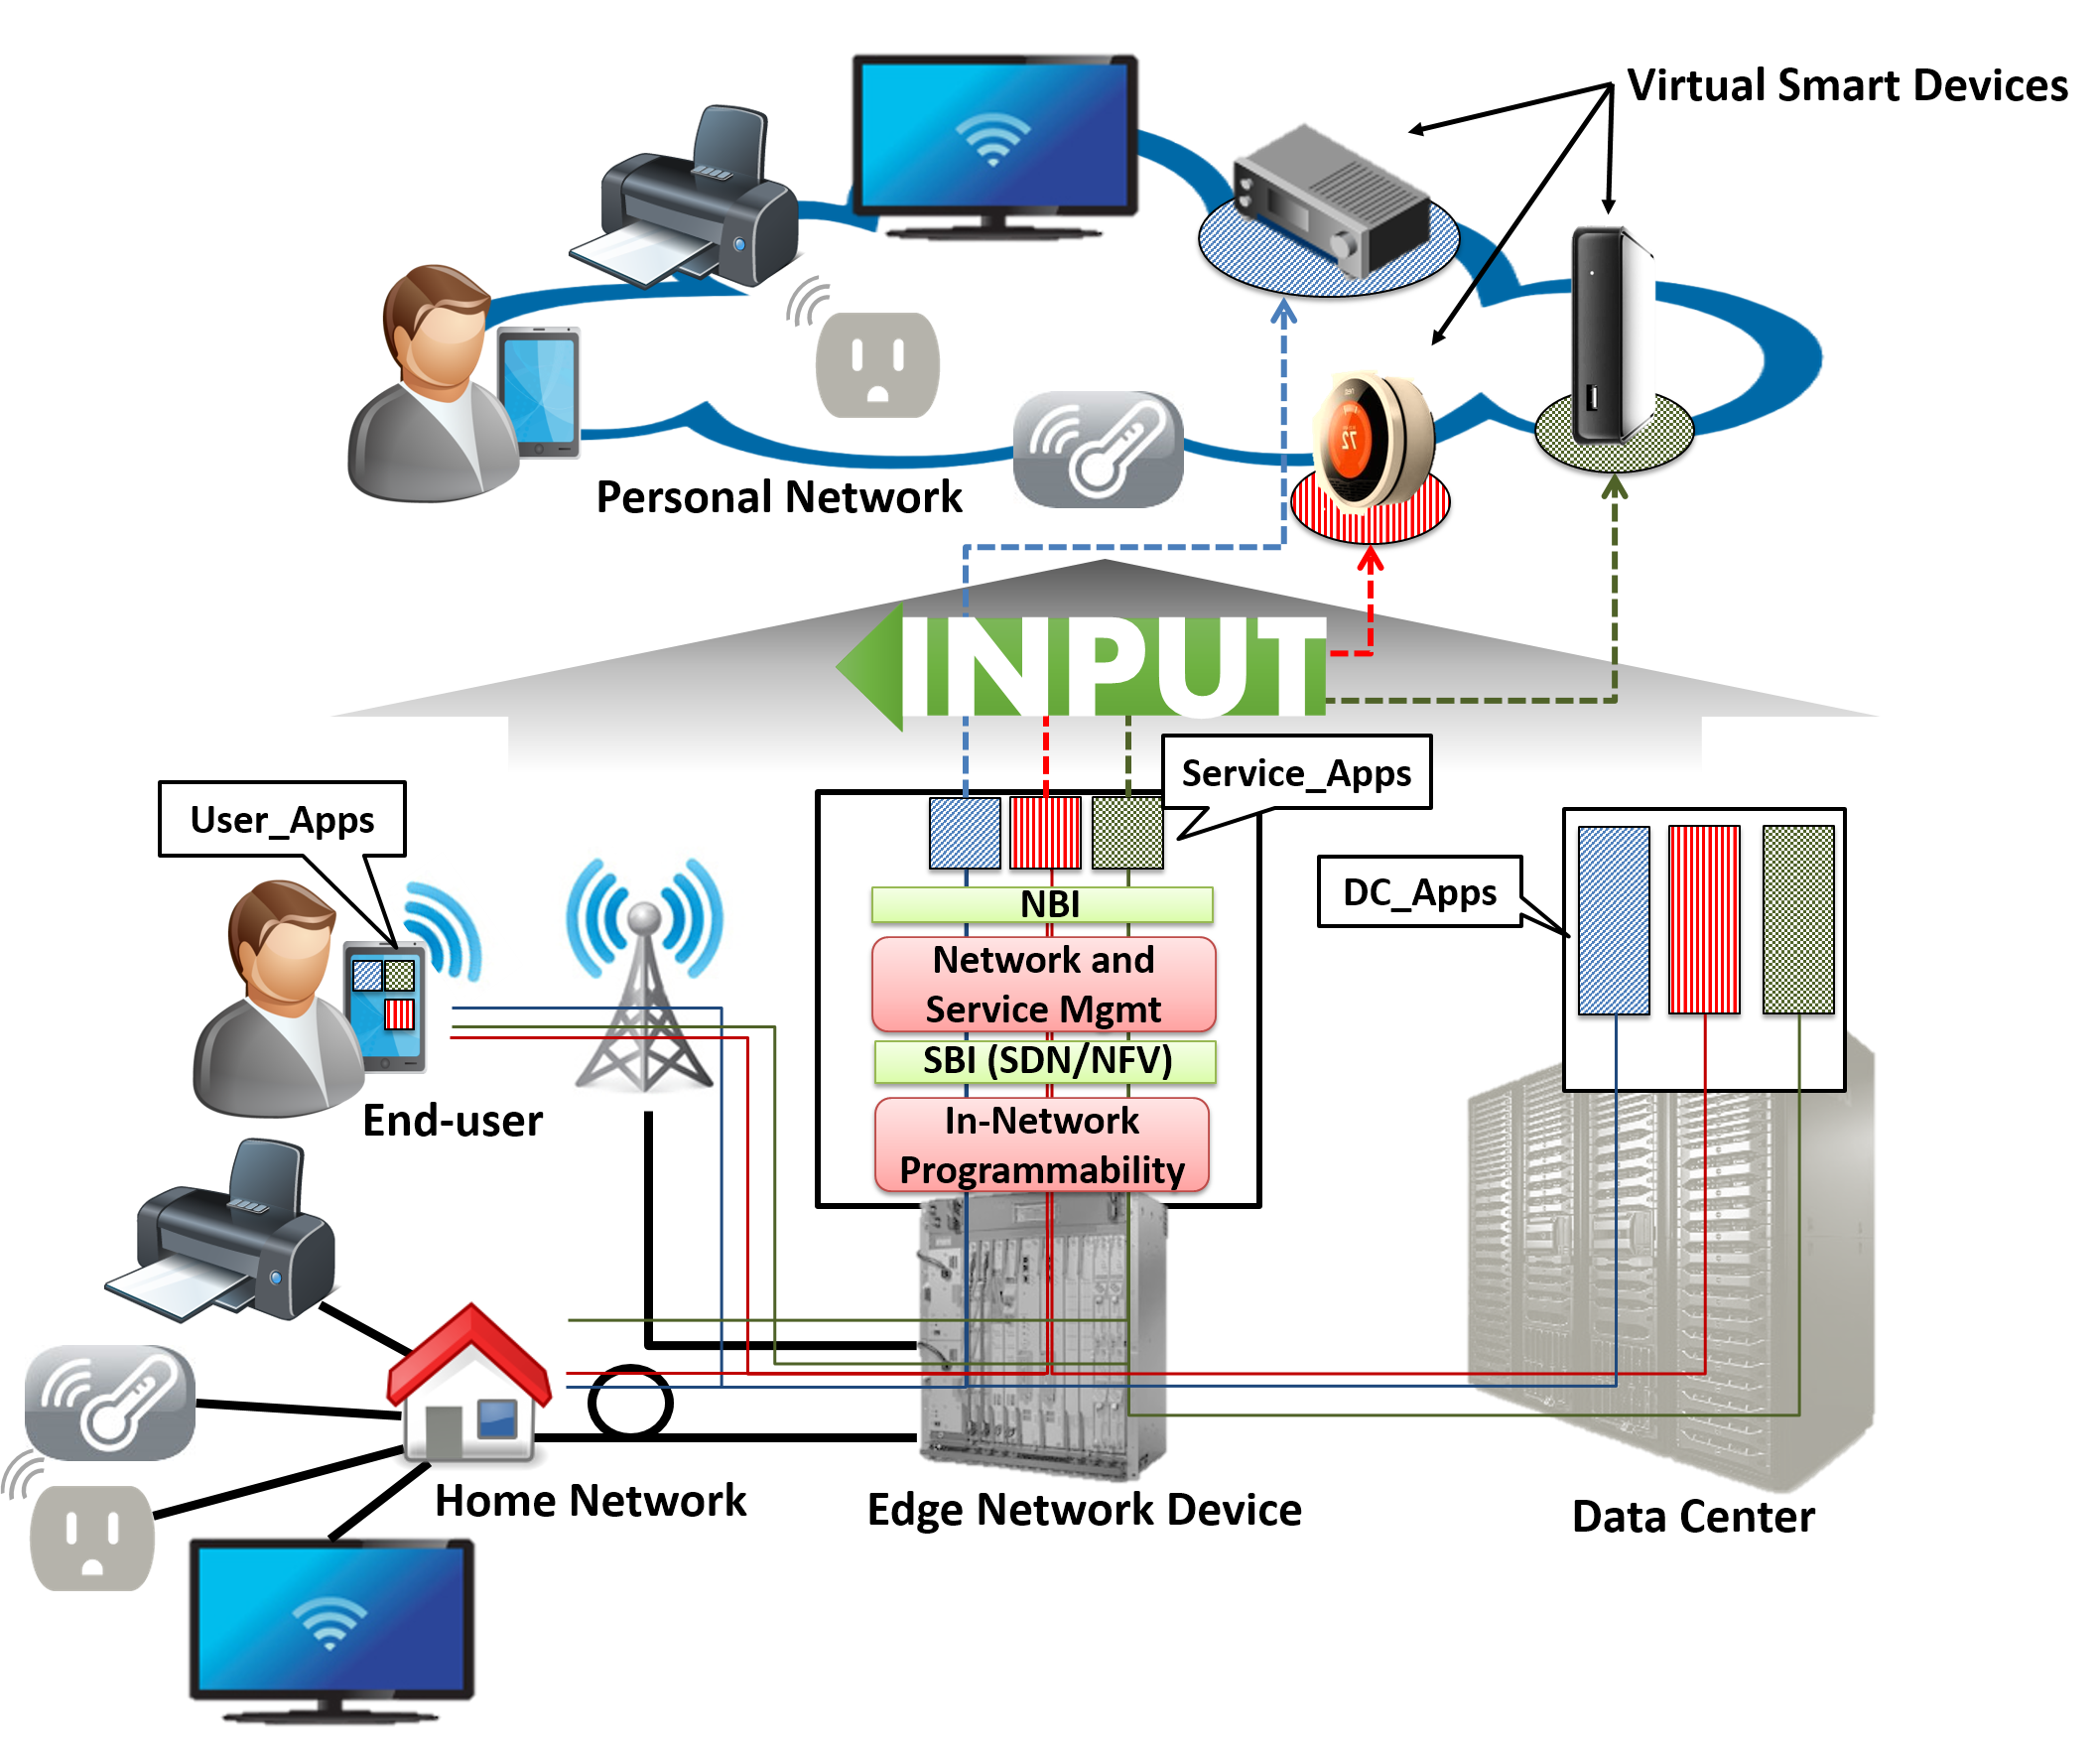 Logical and physical view of the INPUT network and functional architectures.